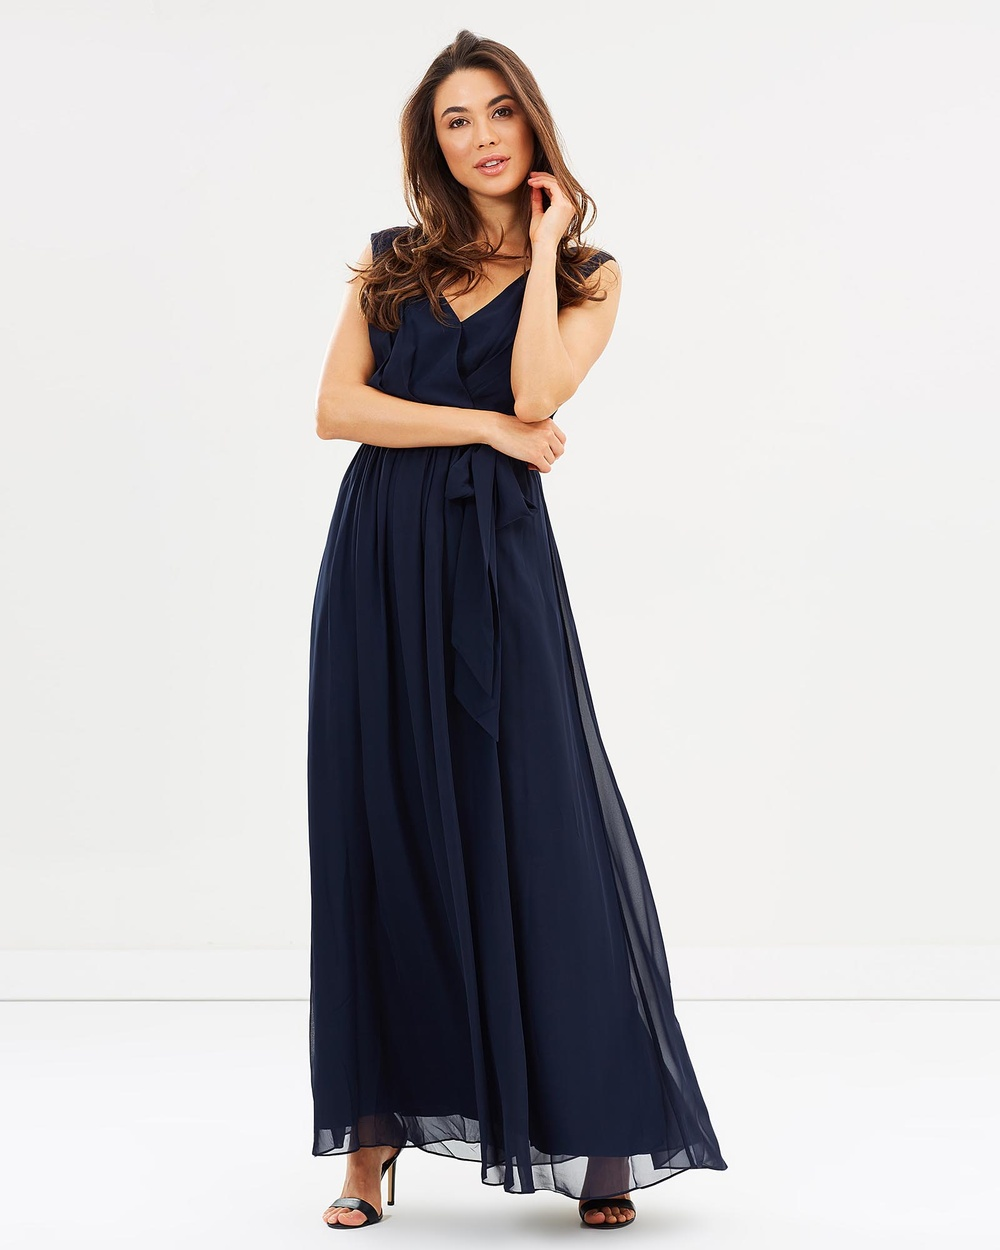 Esther Tulip Maxi Dress Bridesmaid Dresses Navy Tulip Maxi Dress